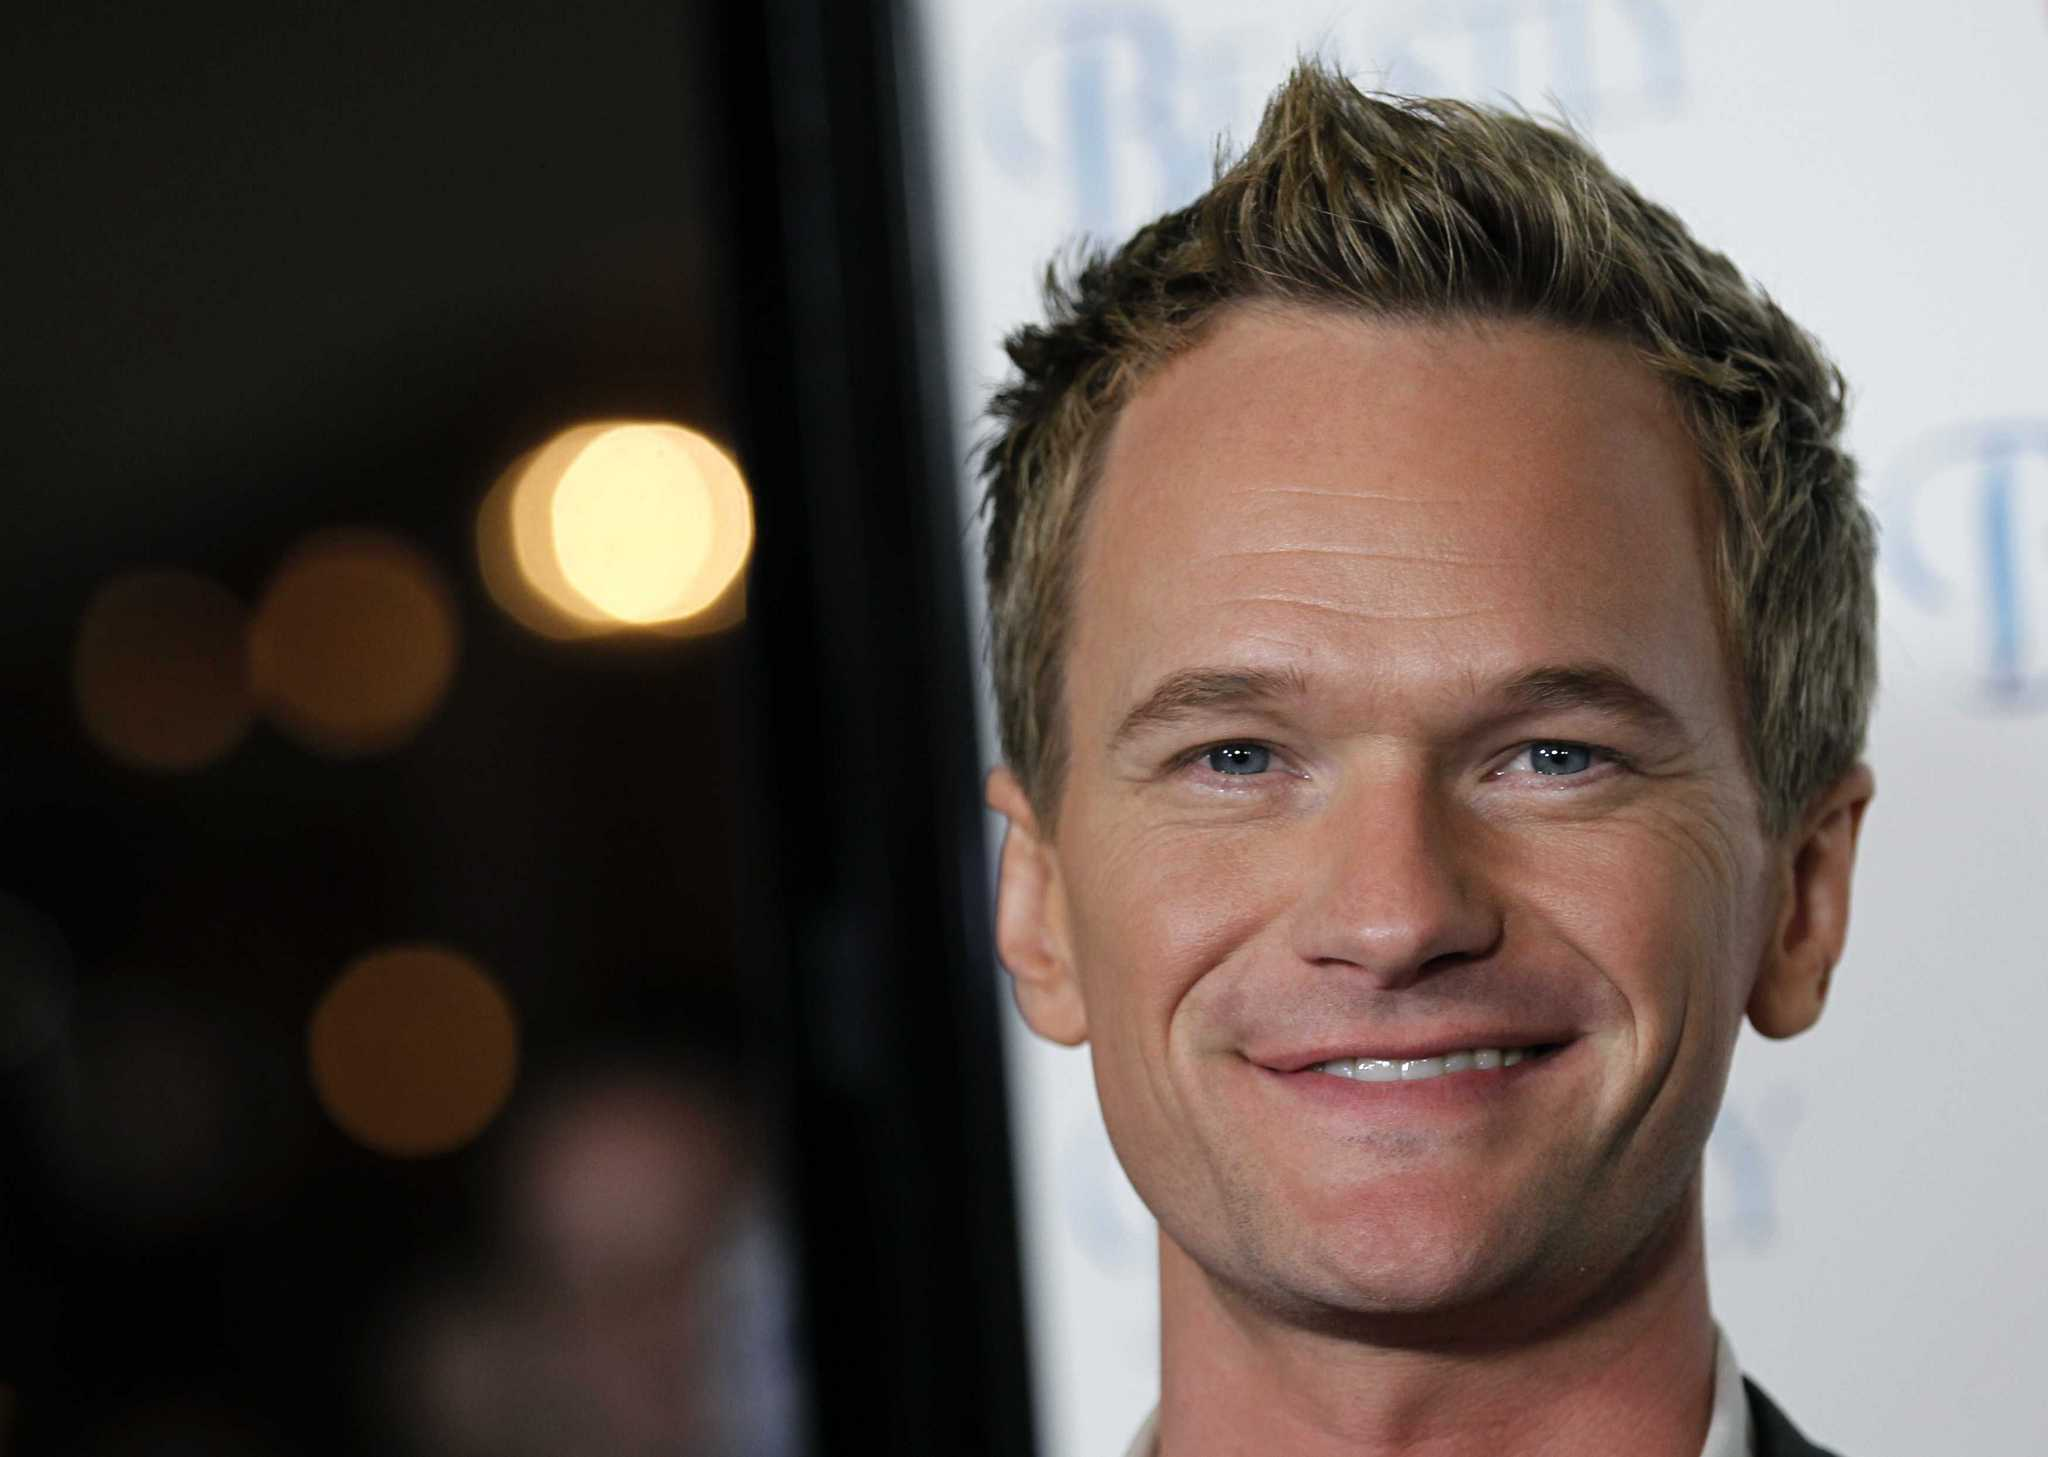 Neil Patrick Harris Widescreen for desktop